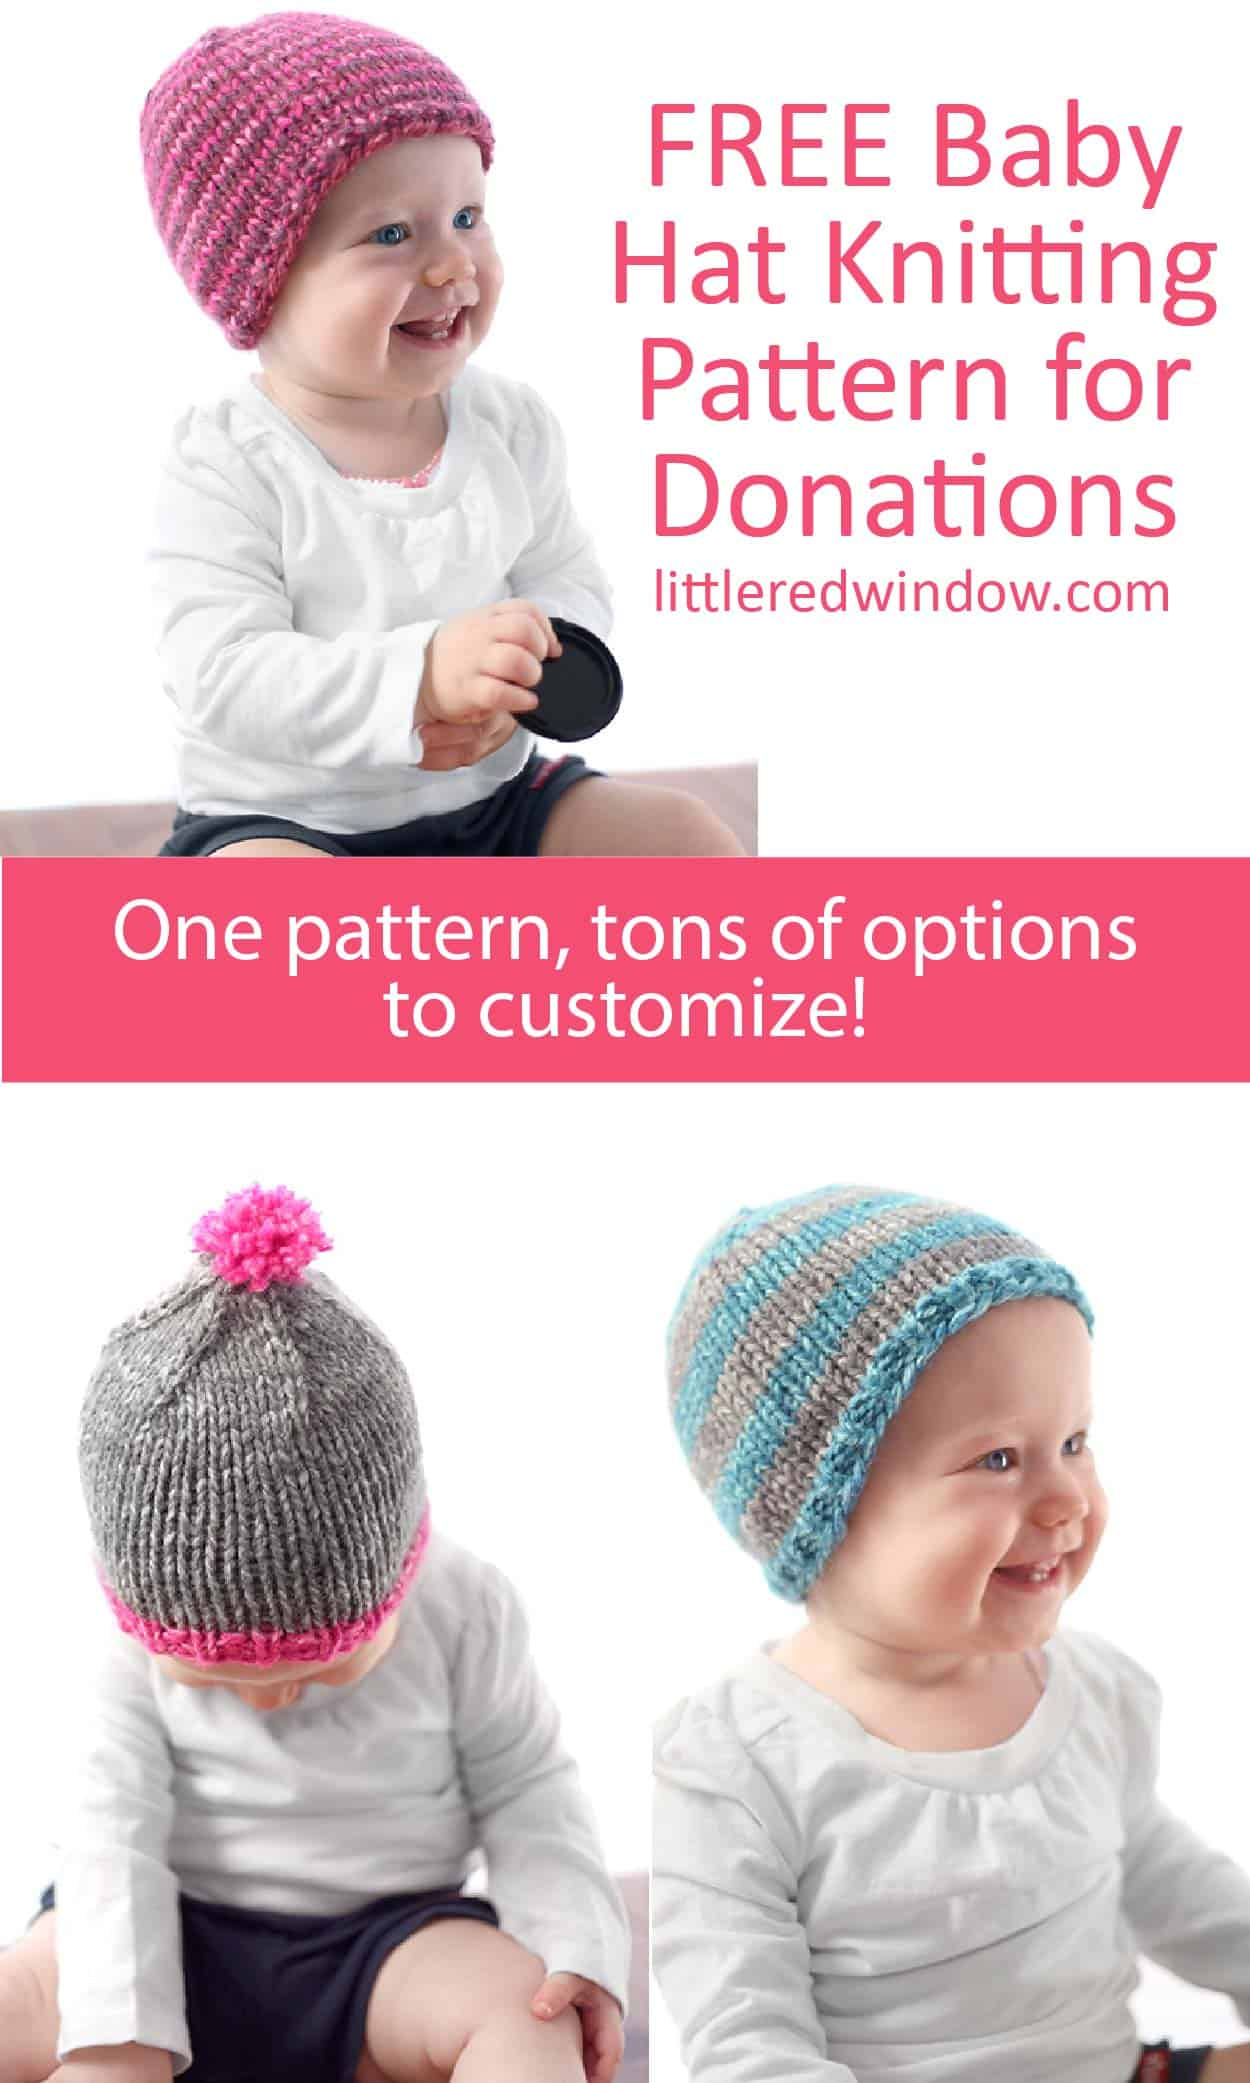 The Do-Gooder Free Baby Hat knitting pattern has a free pdf download, this pattern uses bulky weight yarn for a cute, simple, and quick baby hat you can donate to charity!